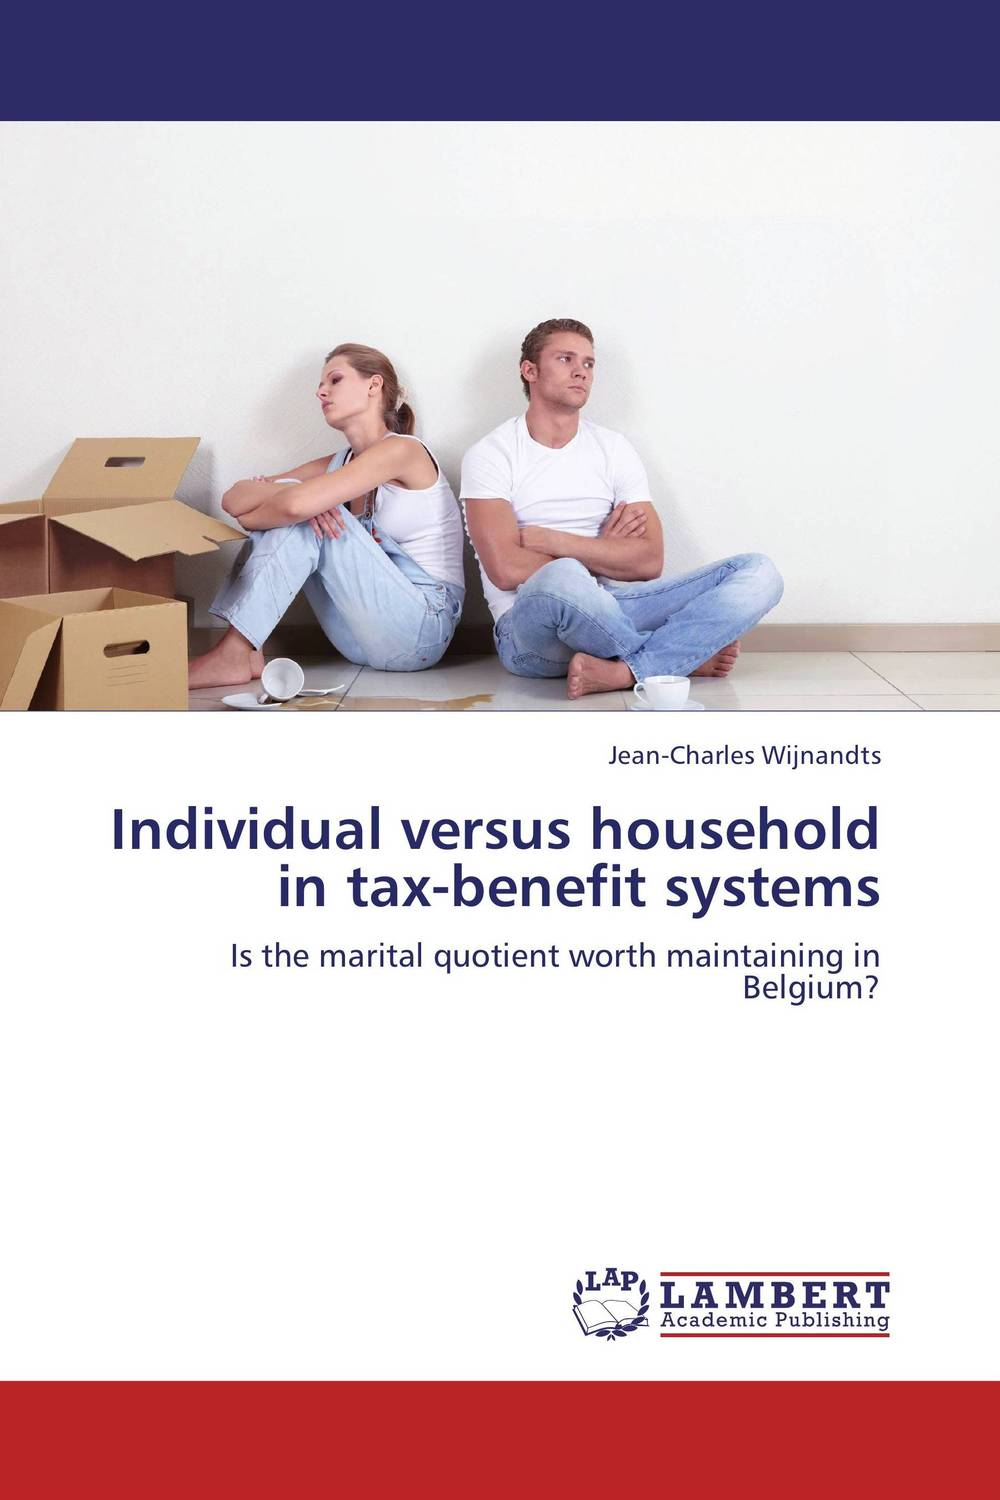 Individual versus household in tax-benefit systems